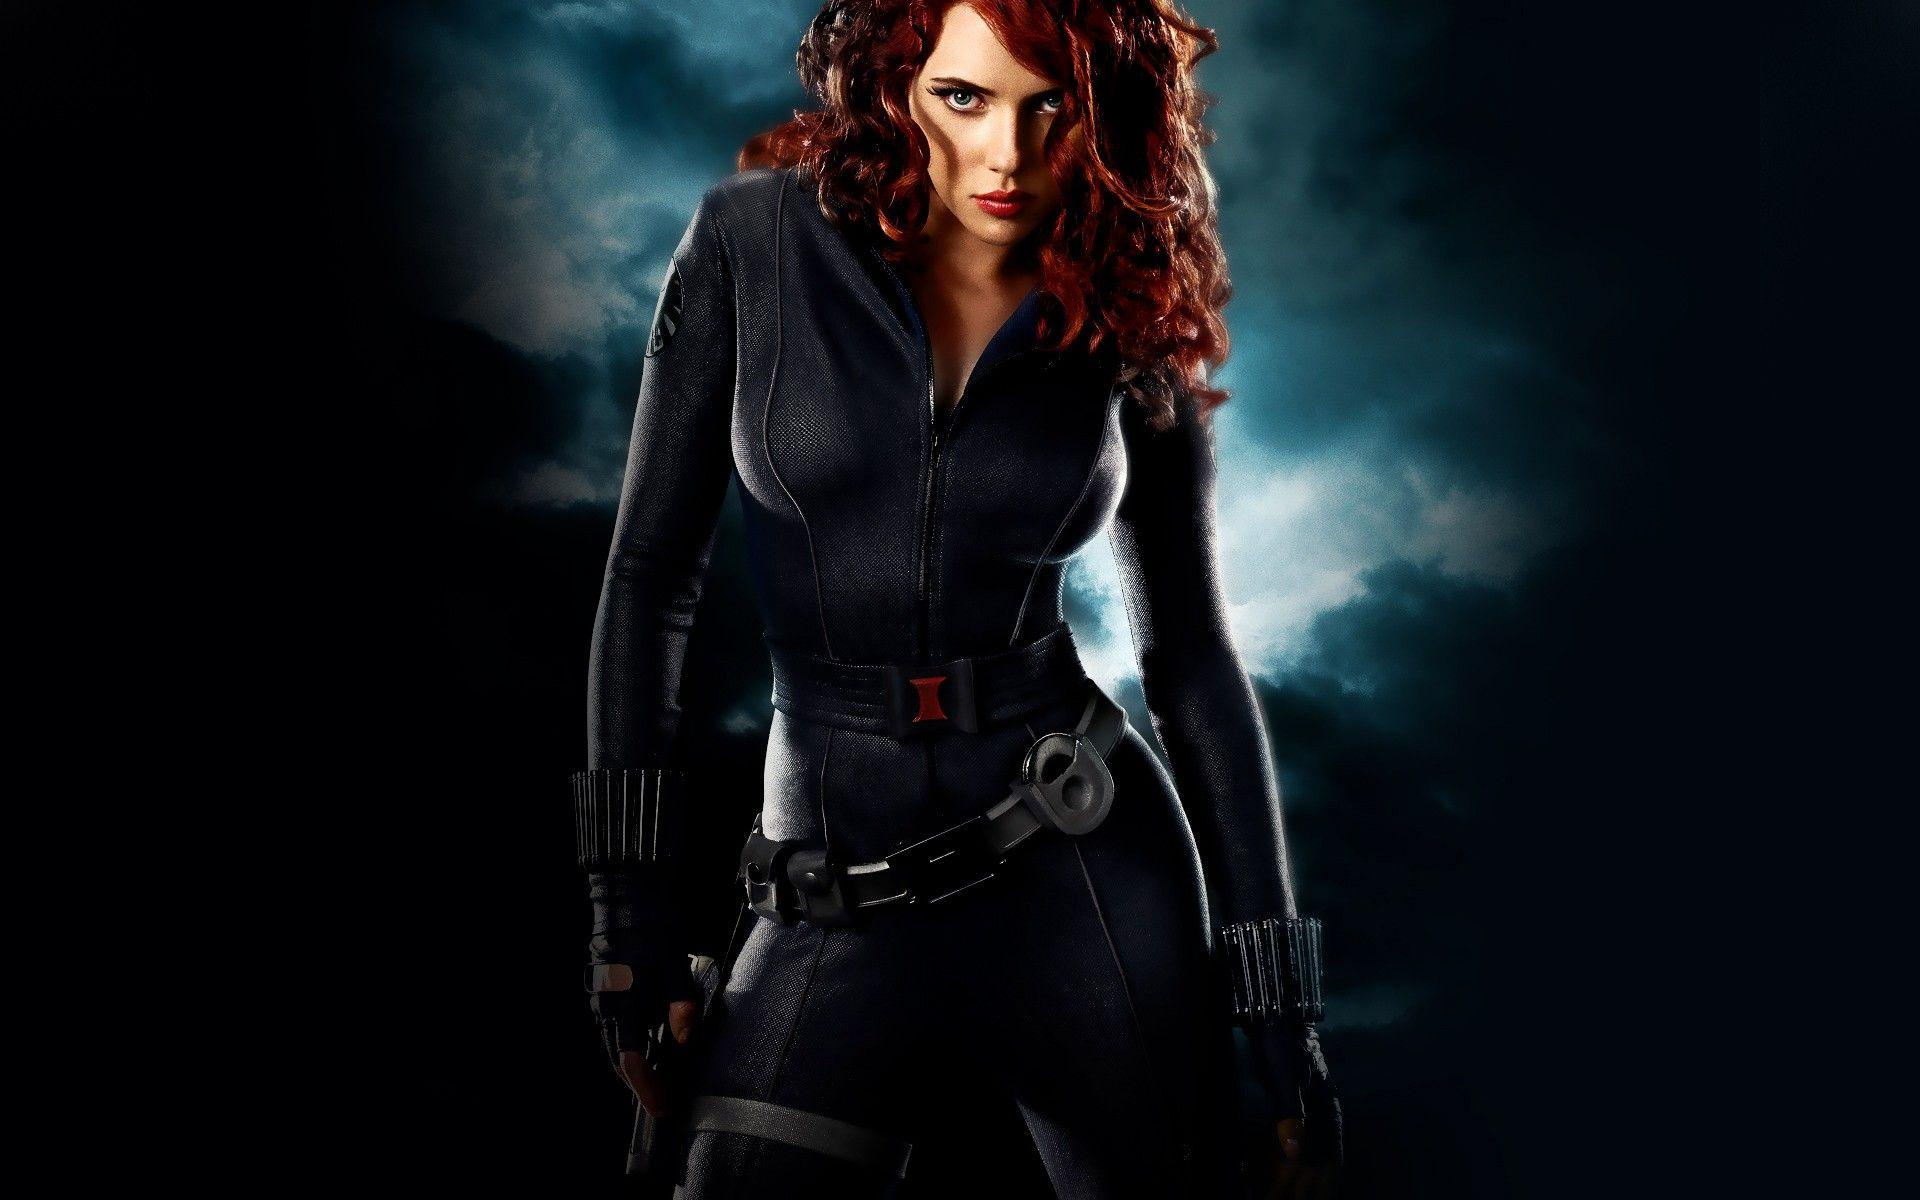 Scarlett Johansson Wallpaper: Scarlett Johansson Black Widow Wallpapers